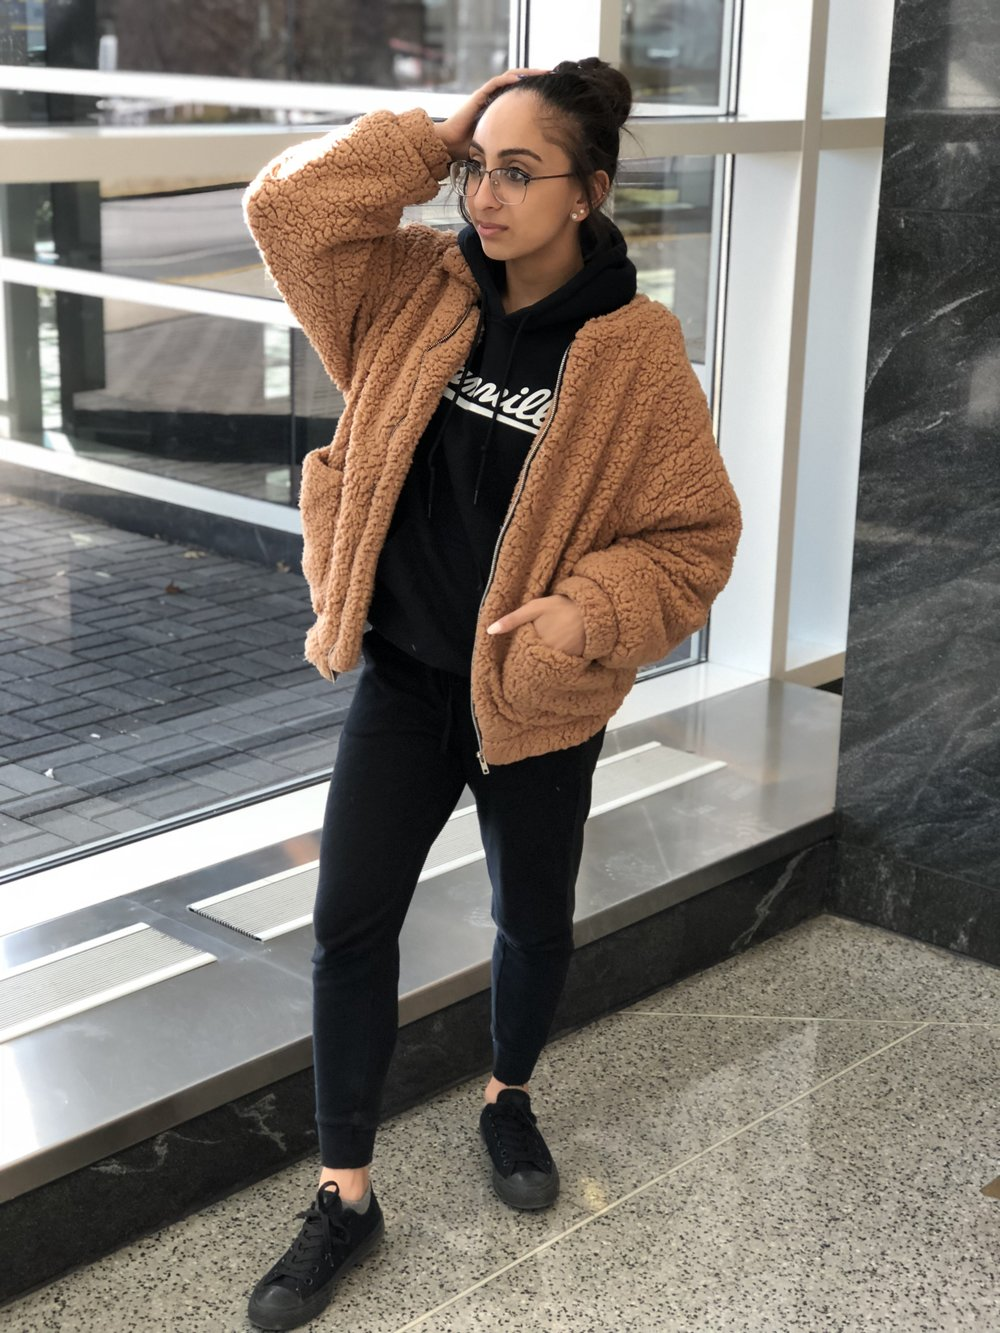 This airport outfit is extremely comfy but fashionable. Have to be extra even at the airport! My tan teddy bear coat is from Amazon, my hoodie is from Dreamville, joggers from Hollister, sneakers from converse, and glasses from eye buy direct.